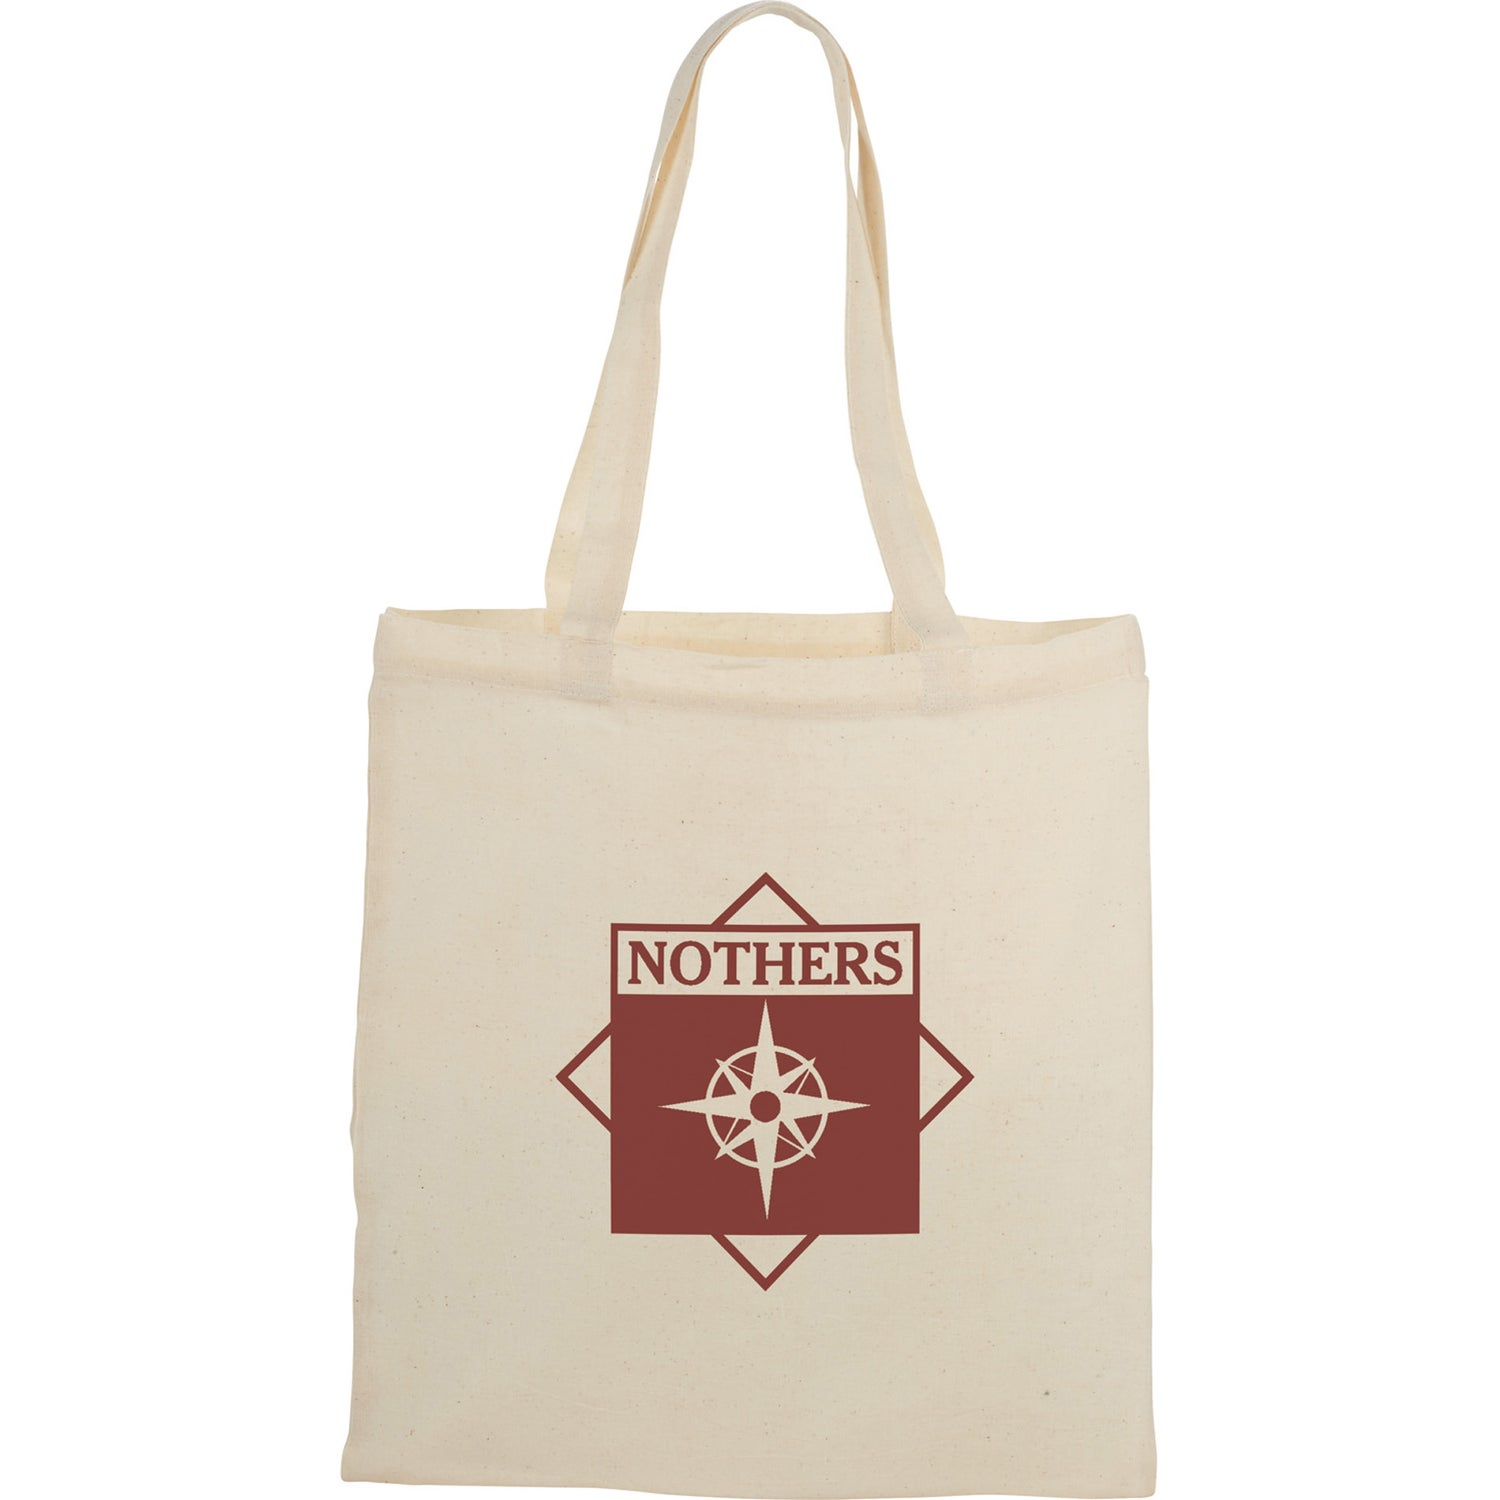 Promotional 3 5 Oz Nevada Cotton Tote Bags With Custom Logo For